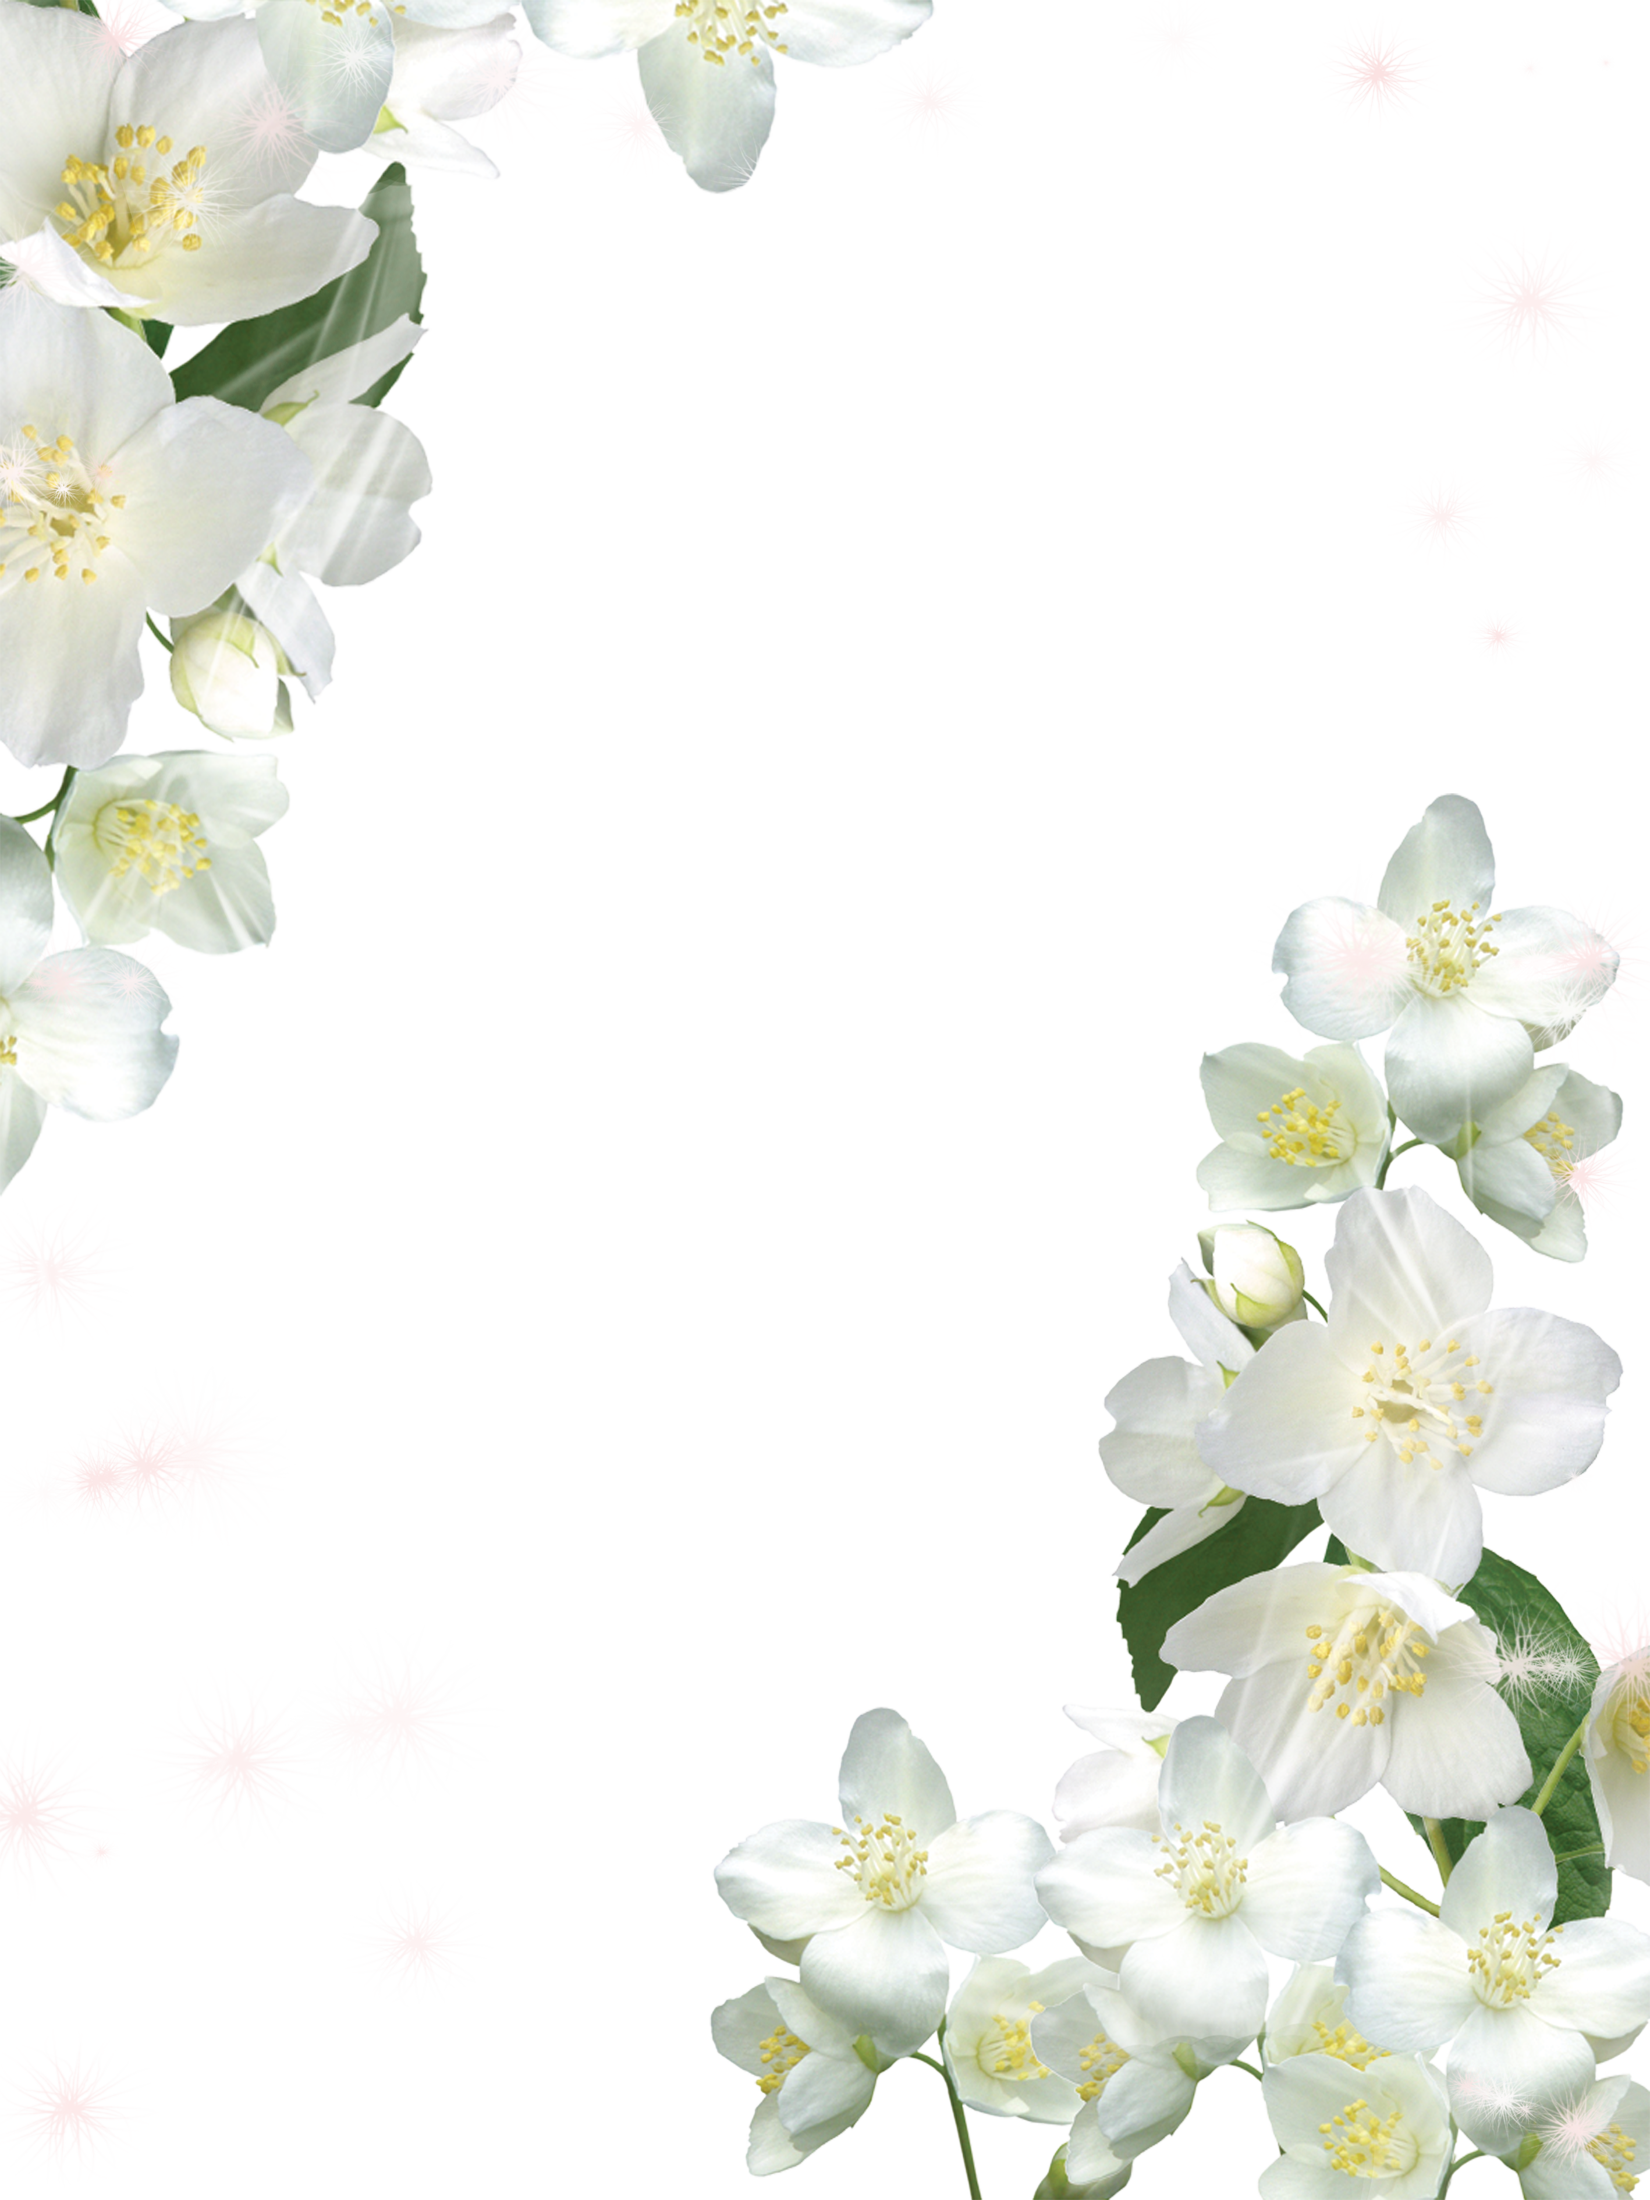 Transparent White Photo Frame with White Flowers White